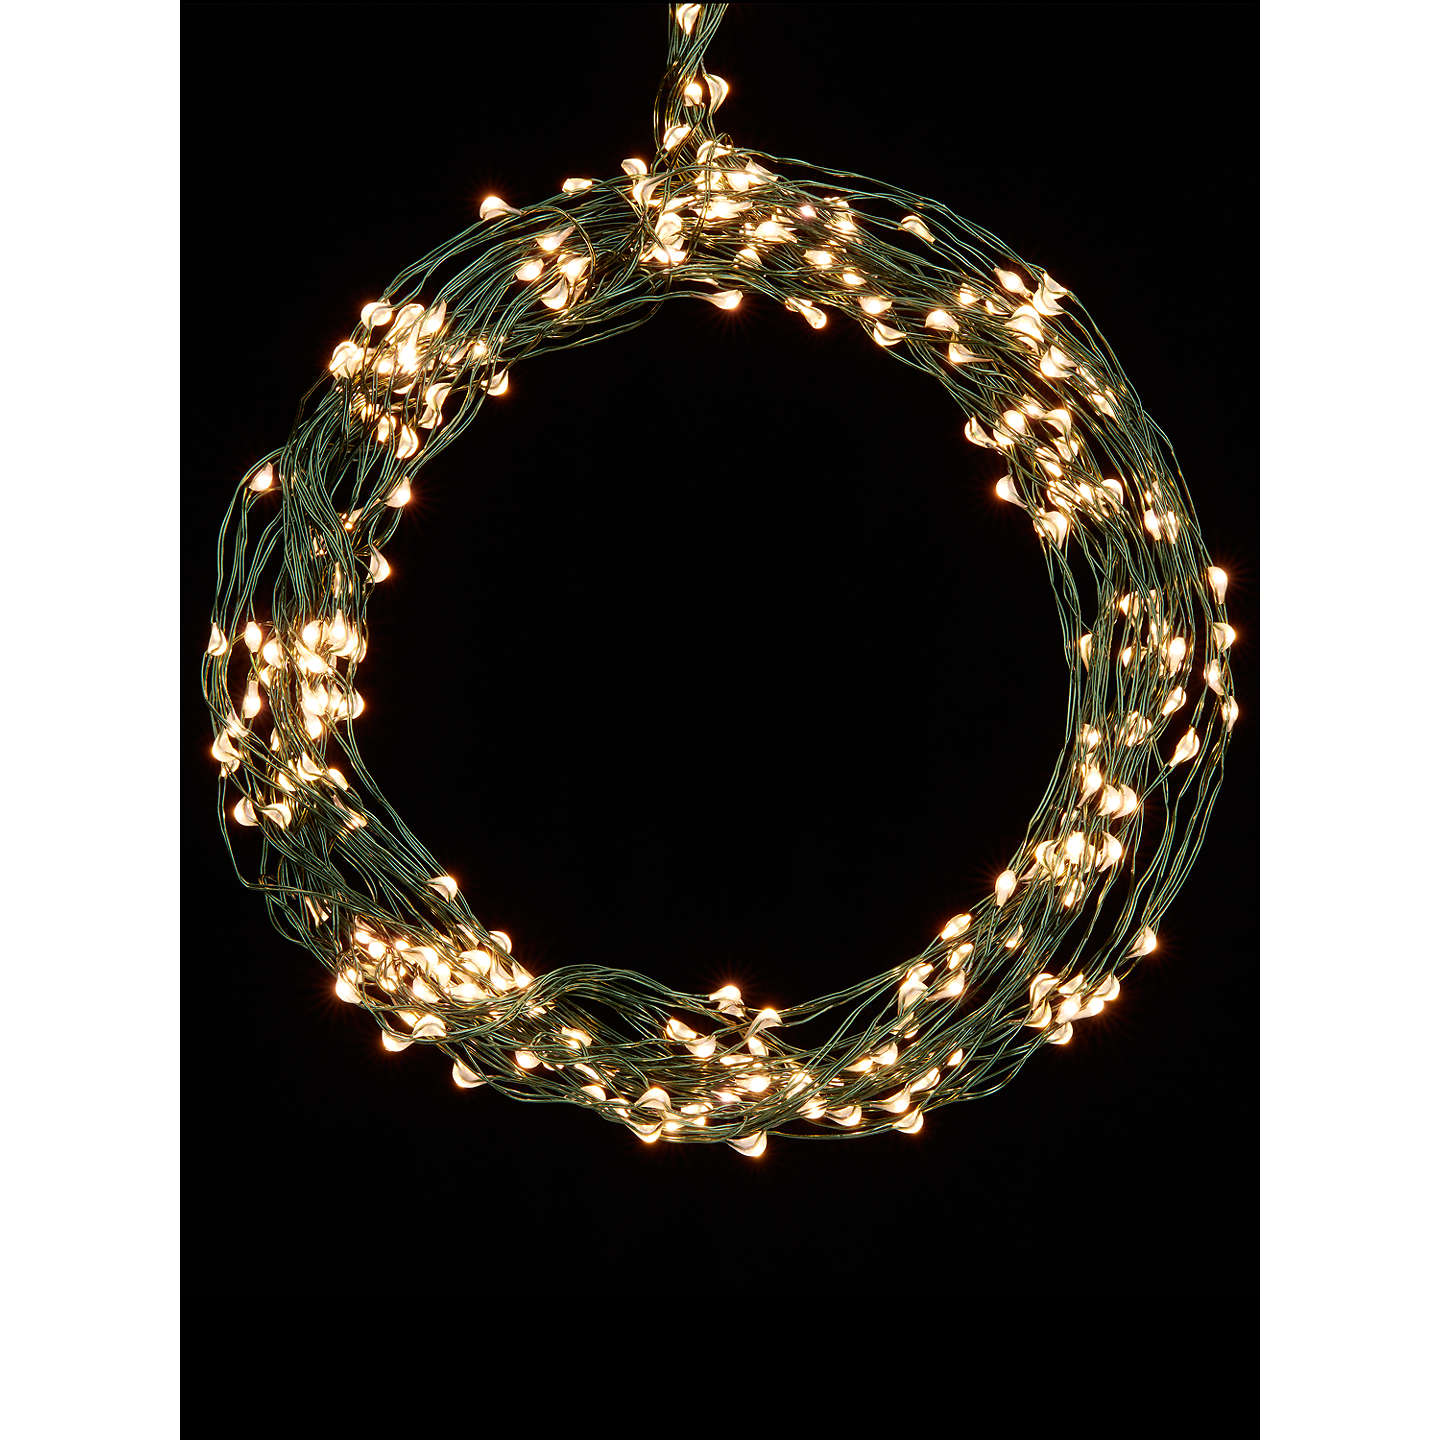 Outdoor String Lights John Lewis: John Lewis 160 LED Waterfall Christmas Lights, 9m, Pure